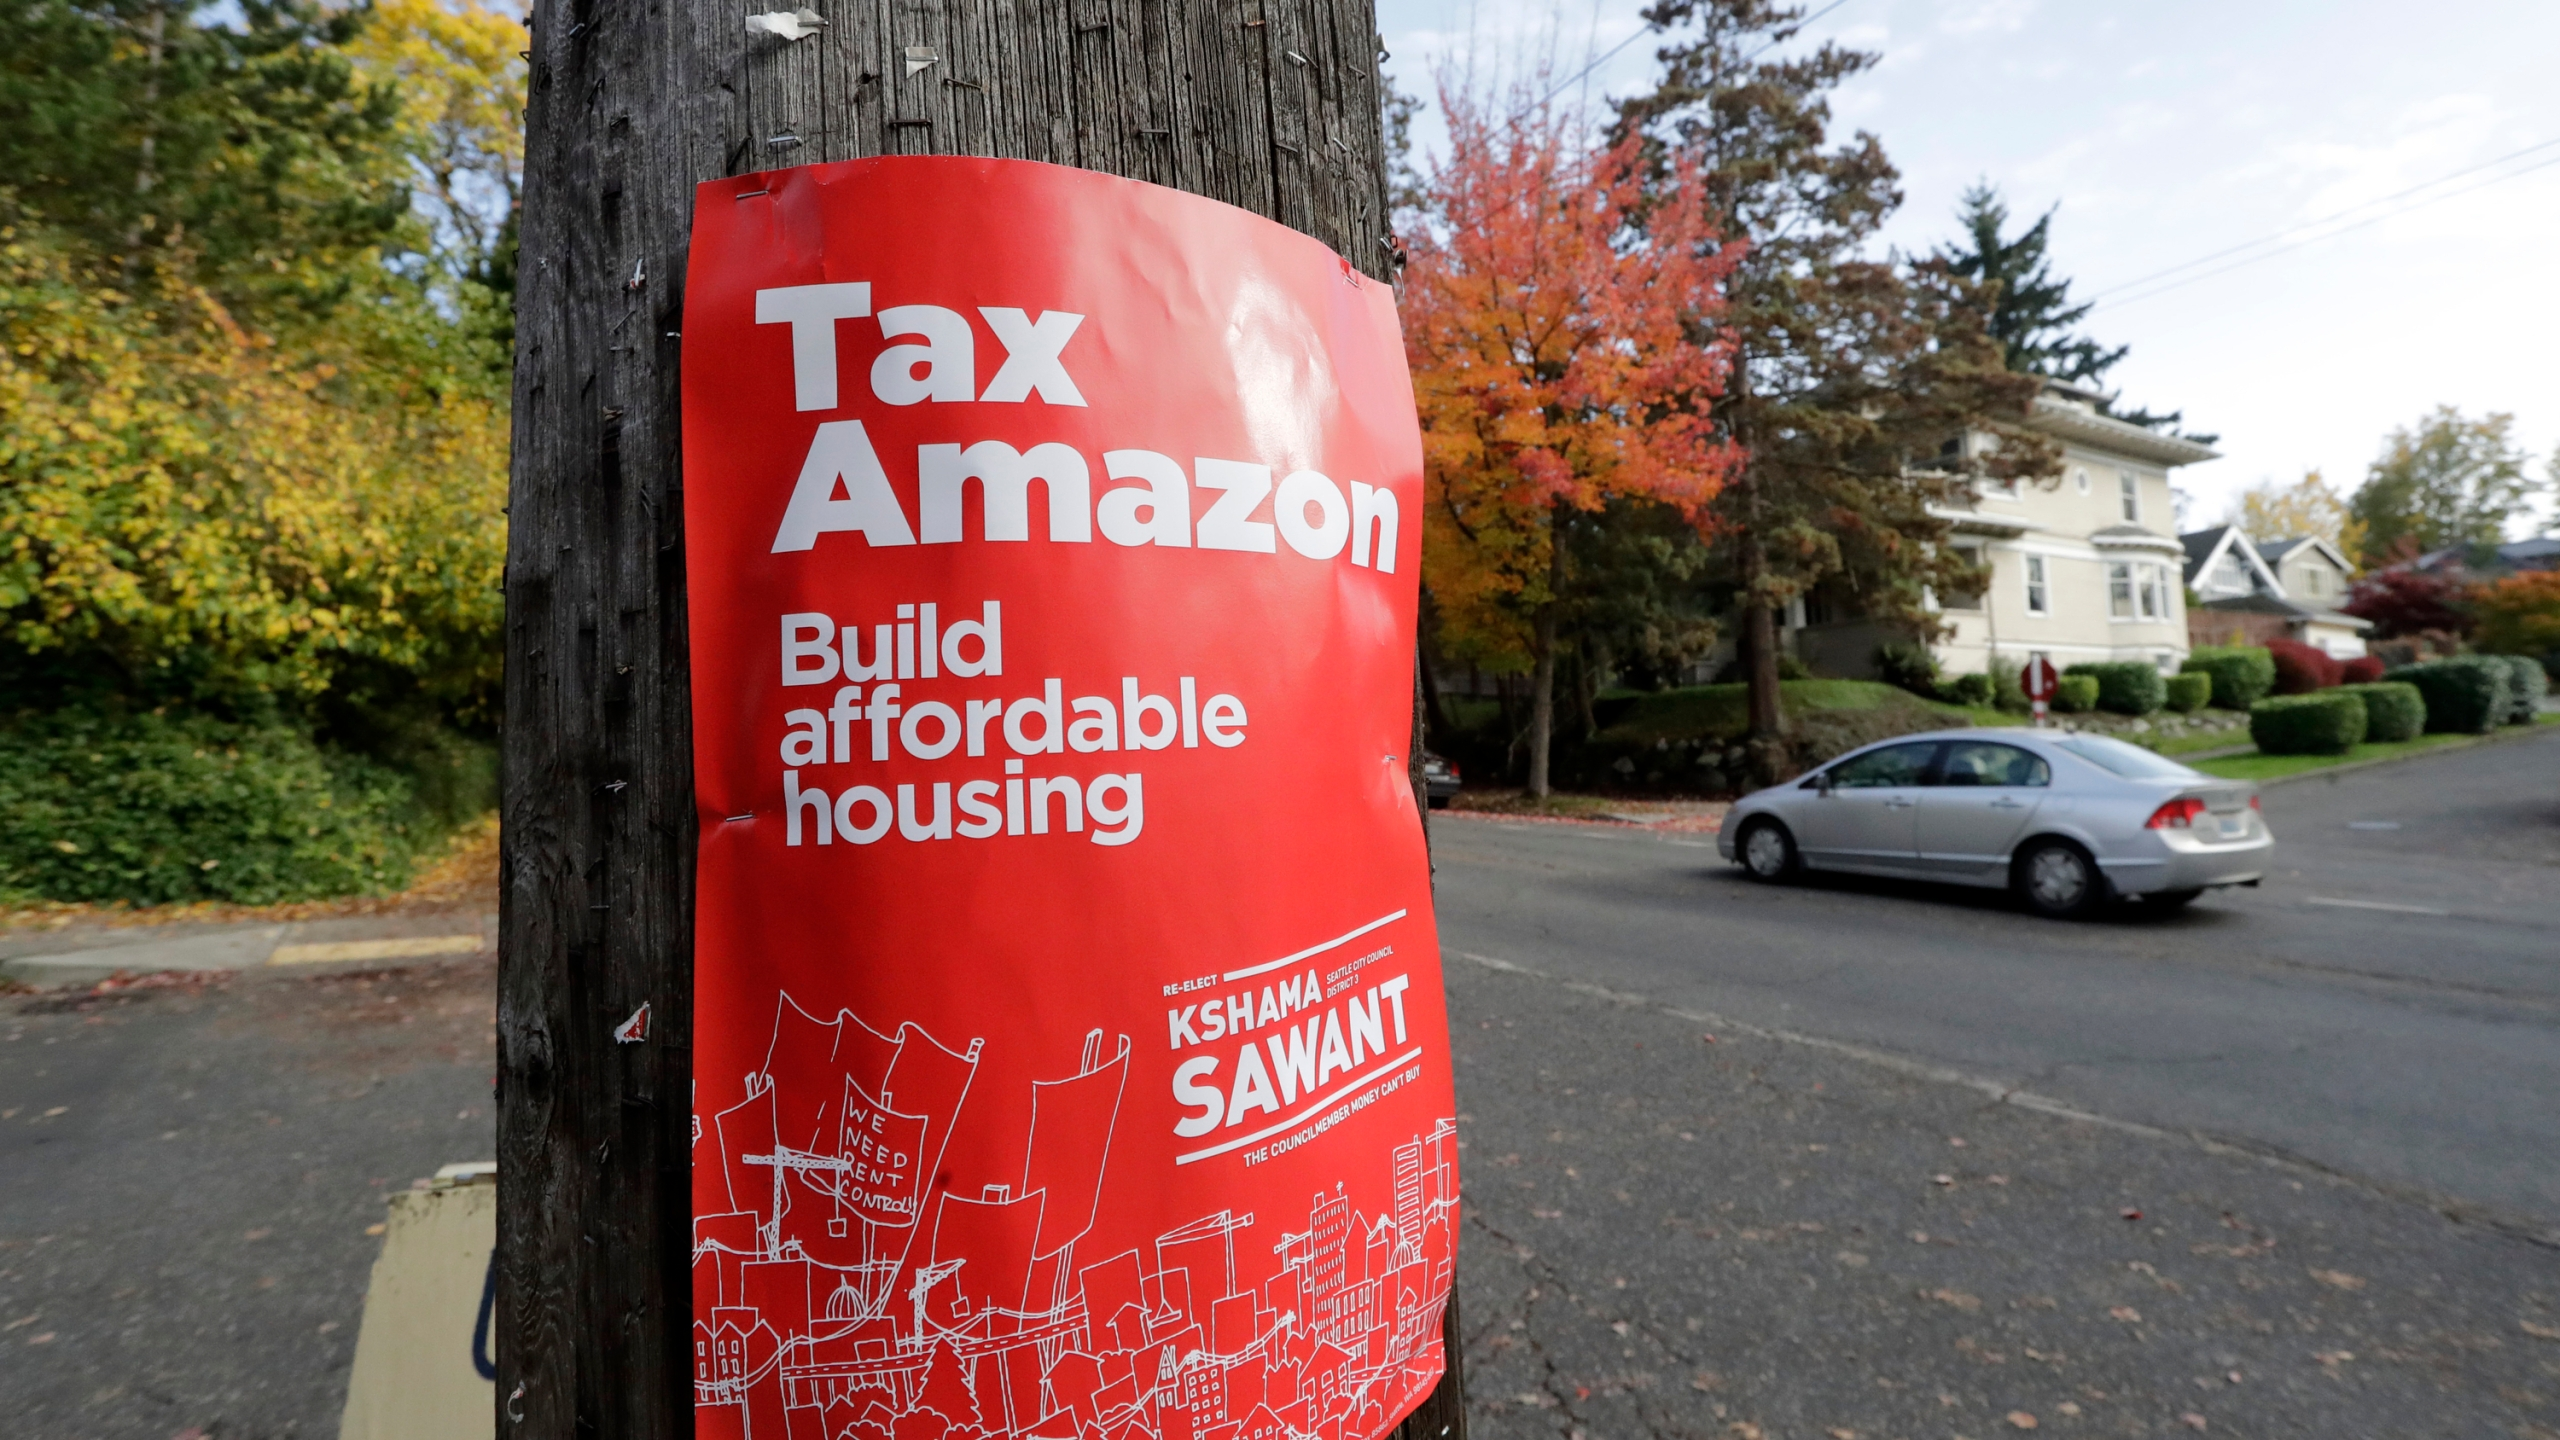 In this Oct. 23, 2019, file photo, a campaign poster for Seattle City Council incumbent candidate Kshama Sawant is posted outside her campaign headquarters in Seattle. The City Council on Monday, July 6, 2020, approved a new tax on big businesses two years after the council repealed a similar tax amid pressure from corporations such as Amazon. (Elaine Thompson/Associated Press)